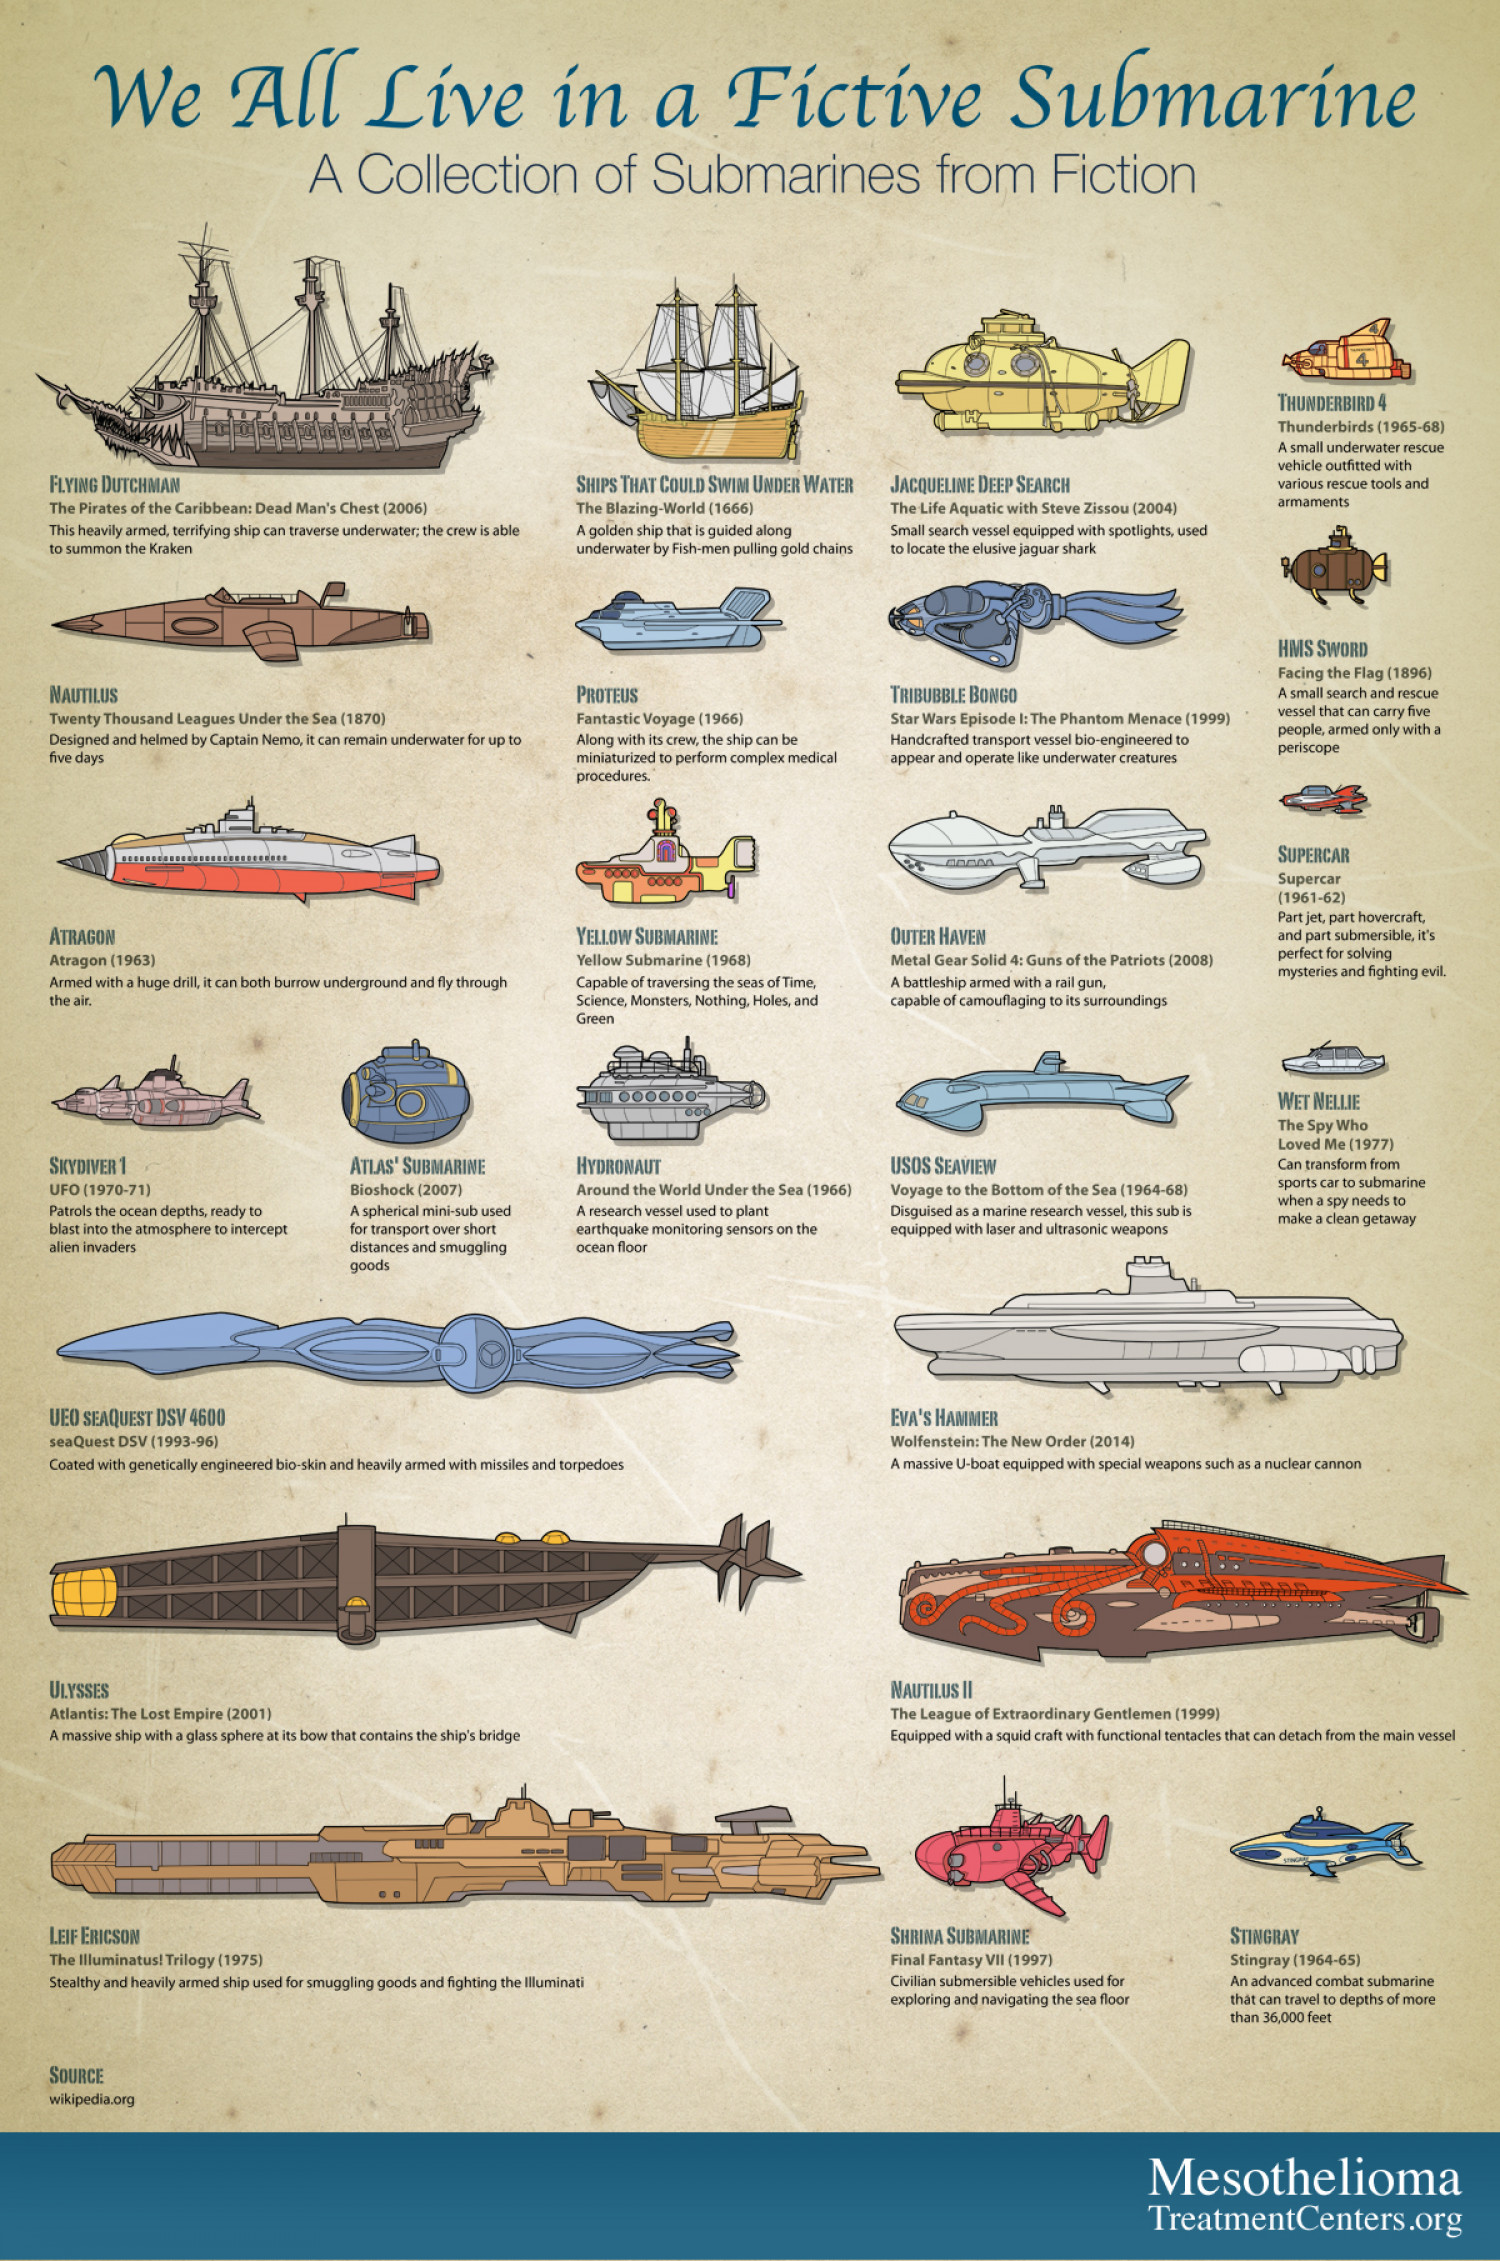 We All Live in a Fictive Submarine Infographic